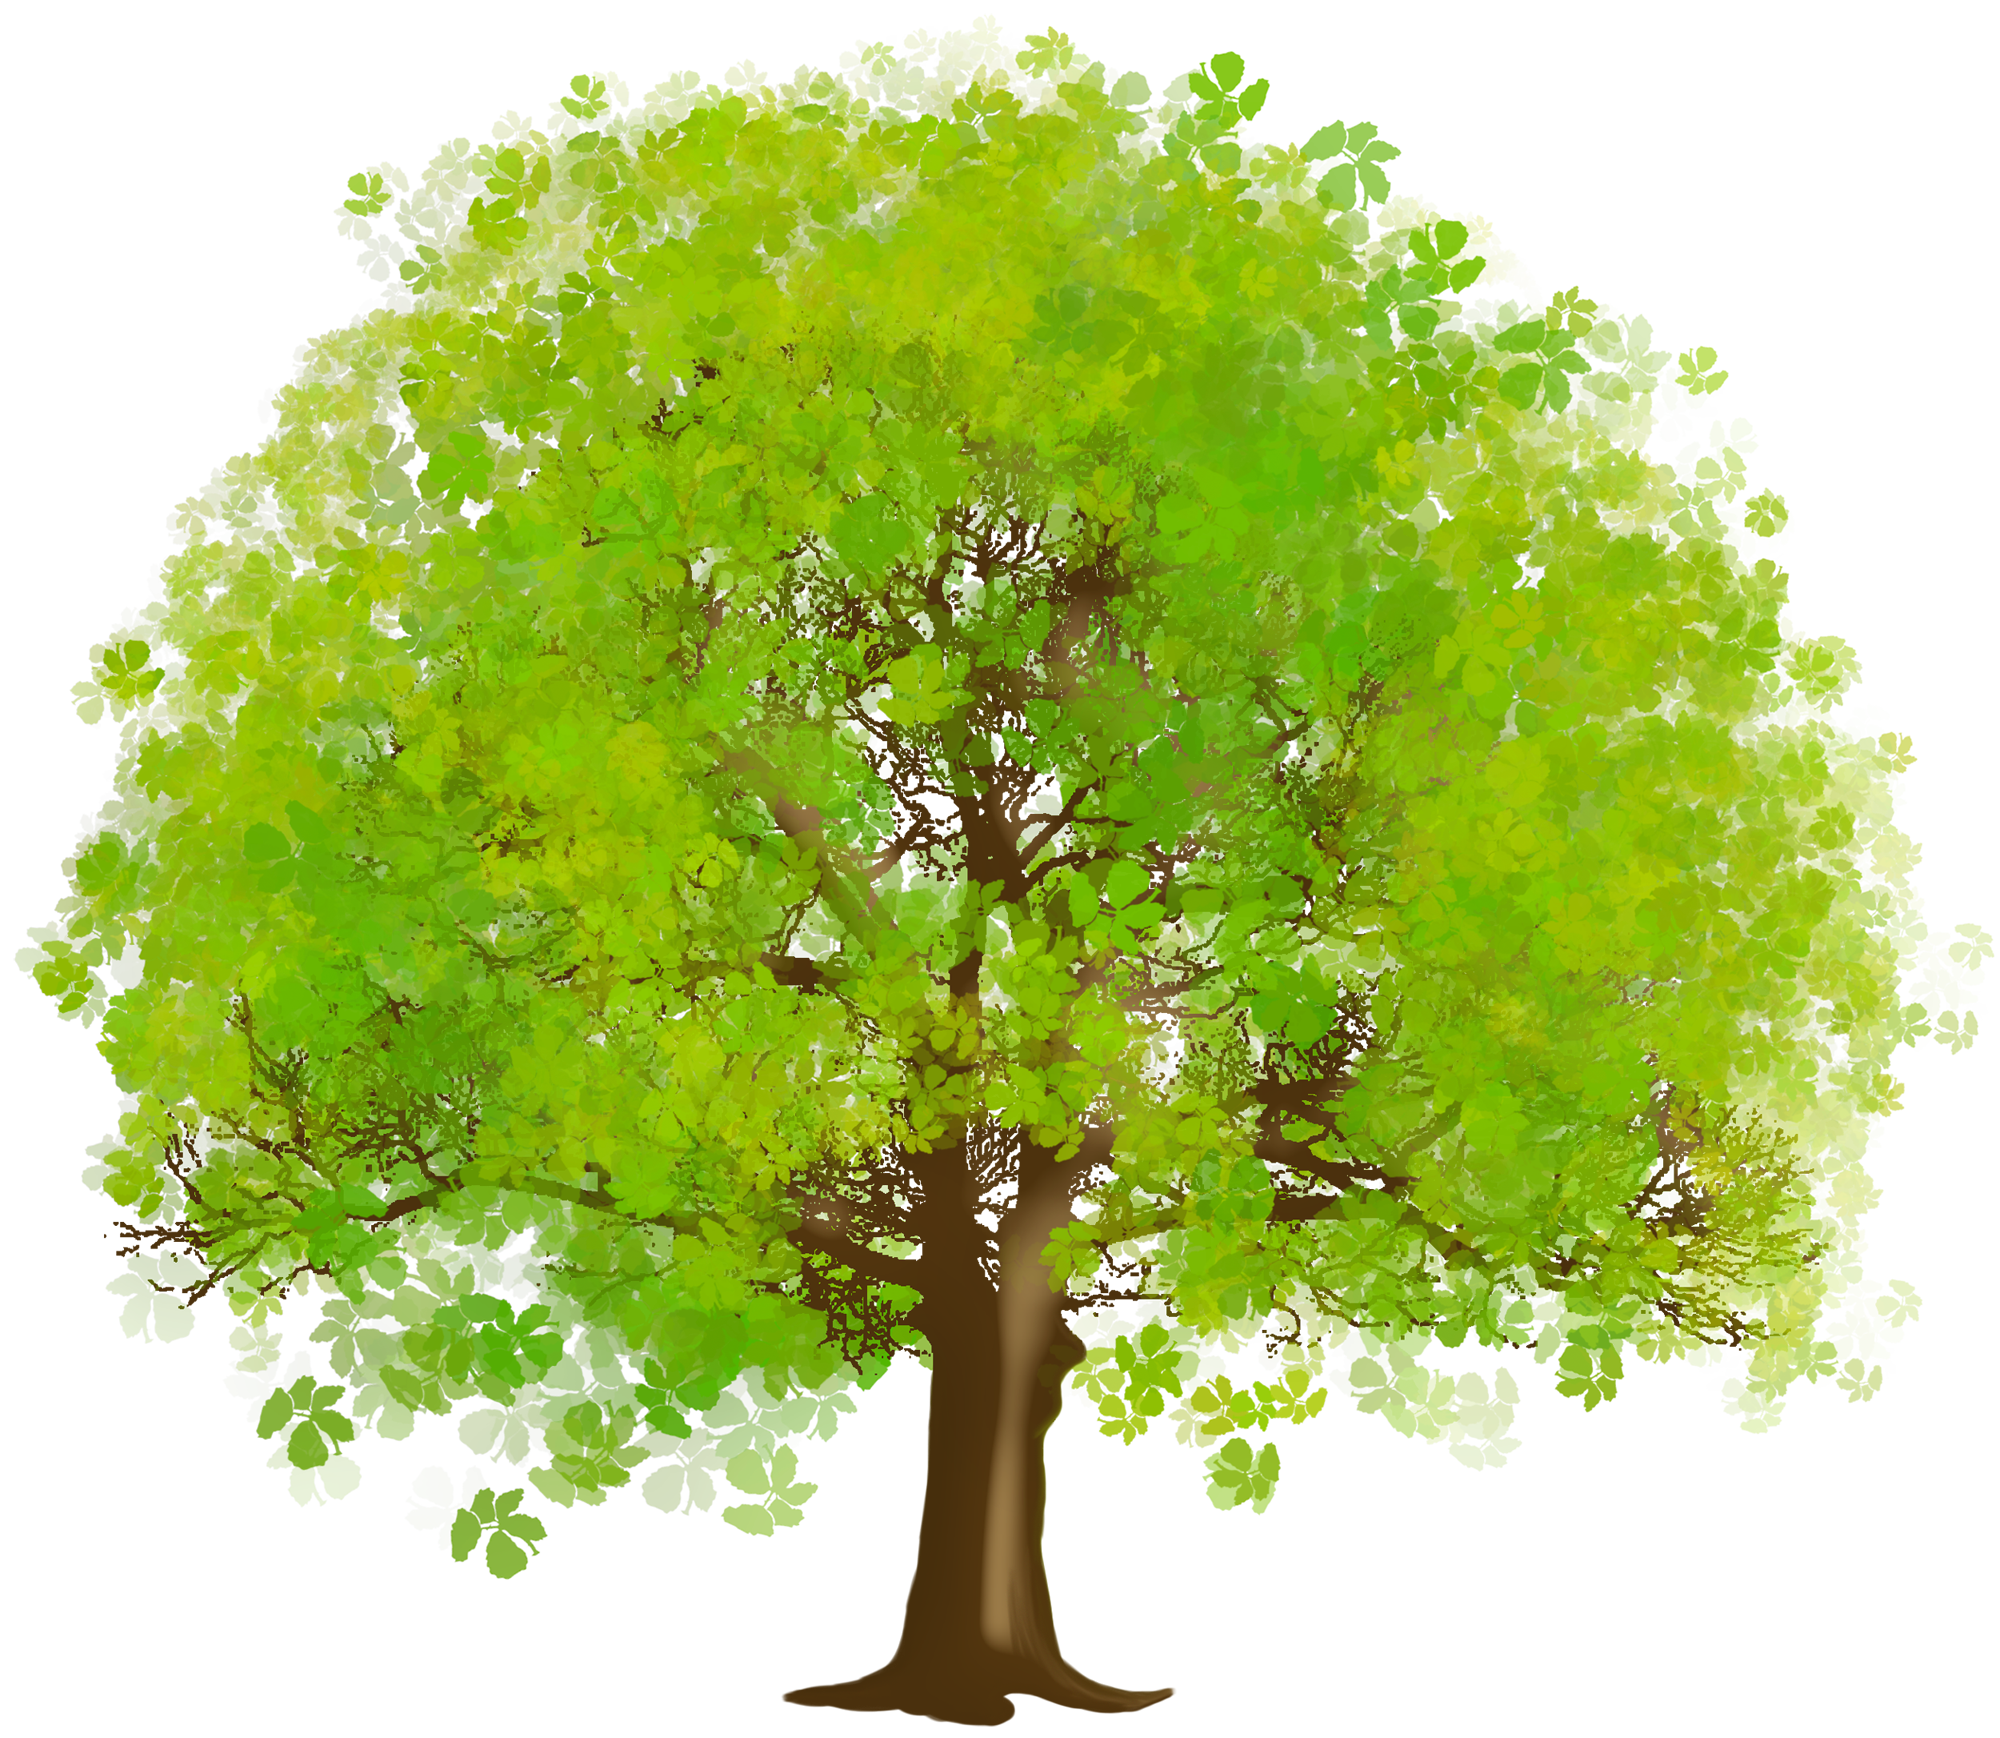 Green tree clipart 20 free Cliparts | Download images on ...